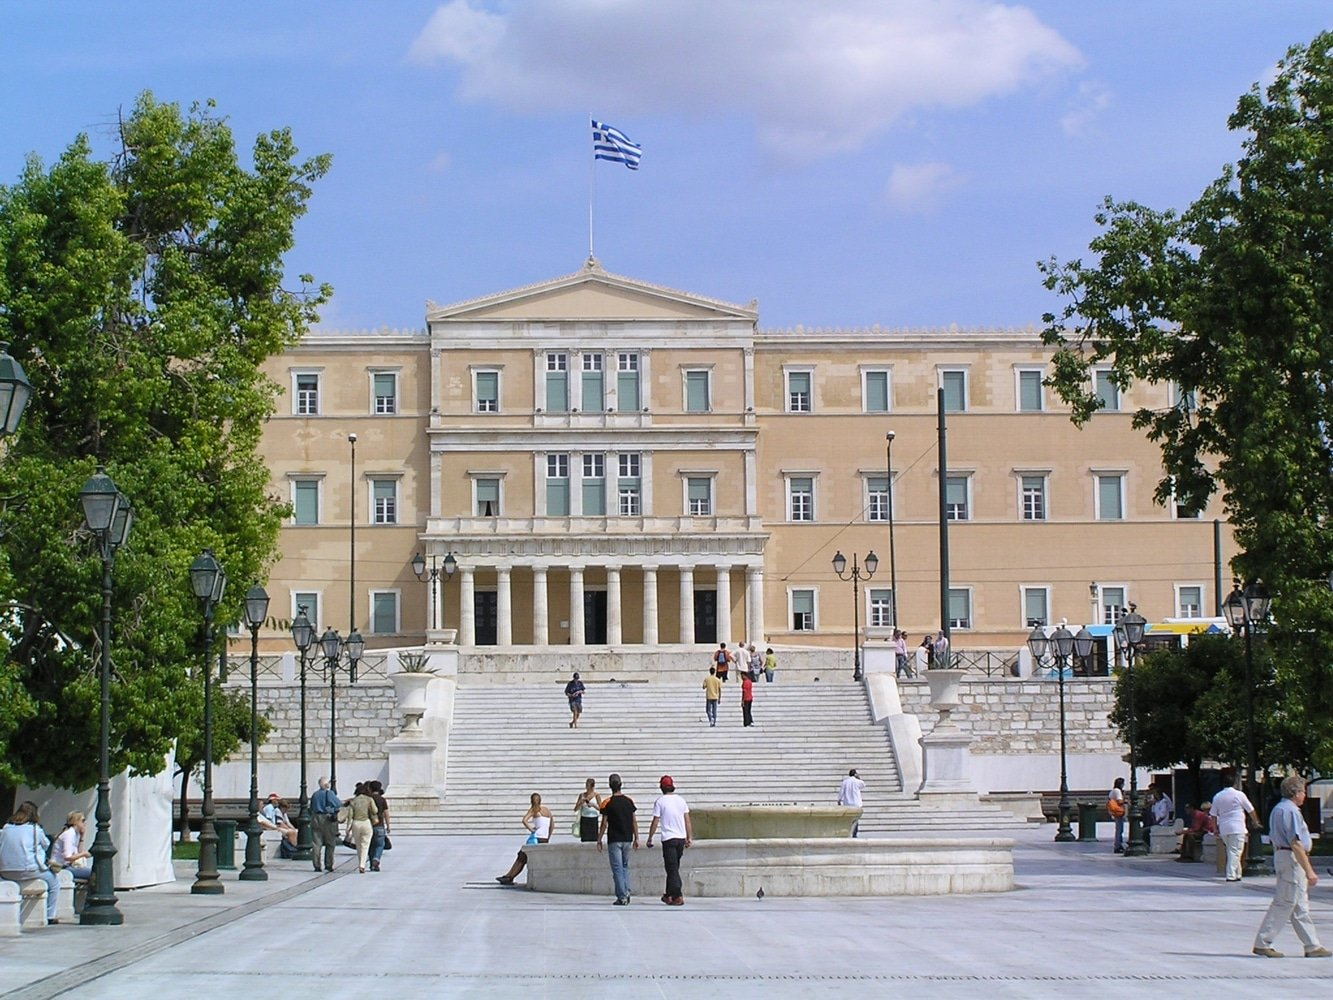 Athens Syntagma square sightseeing